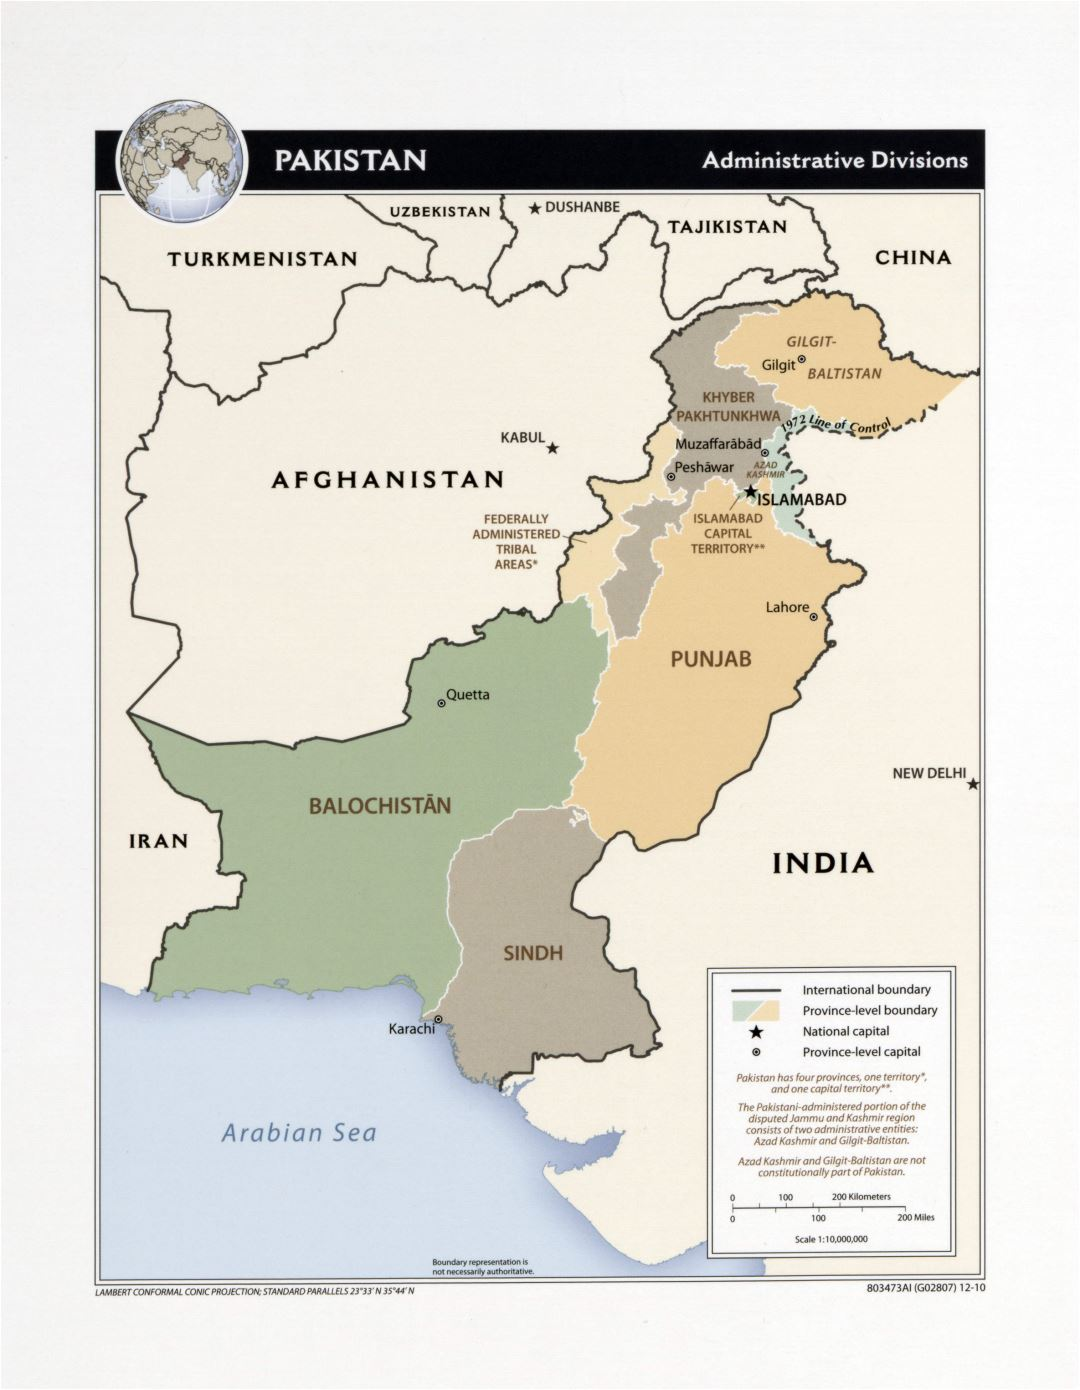 Large detailed administrative divisions map of Pakistan - 2010